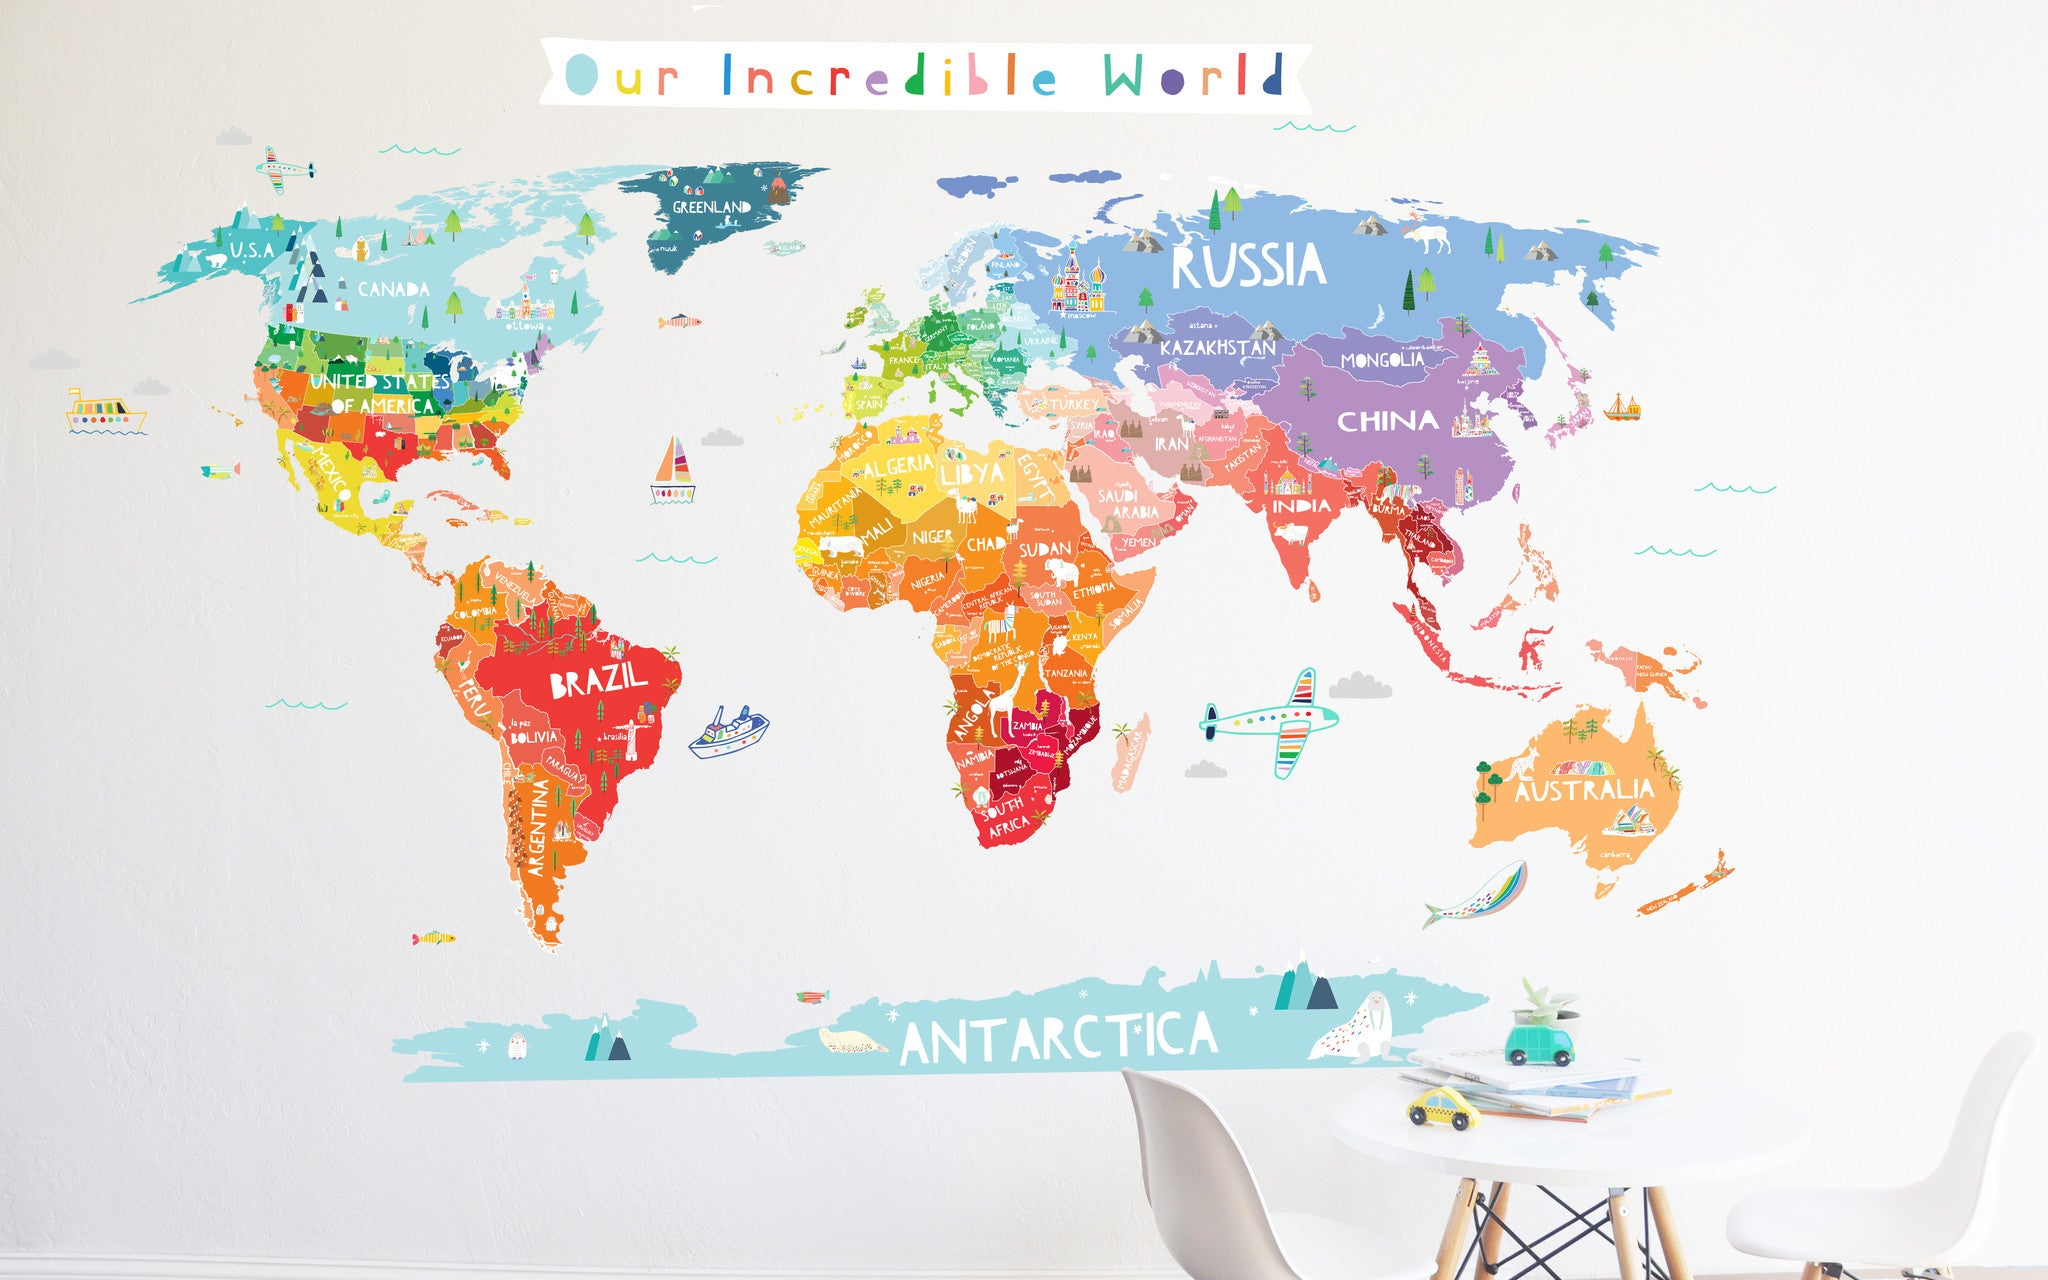 Our incredible world die cut world map wall decal with our incredible world die cut world map wall decal with personalization stickers gumiabroncs Image collections